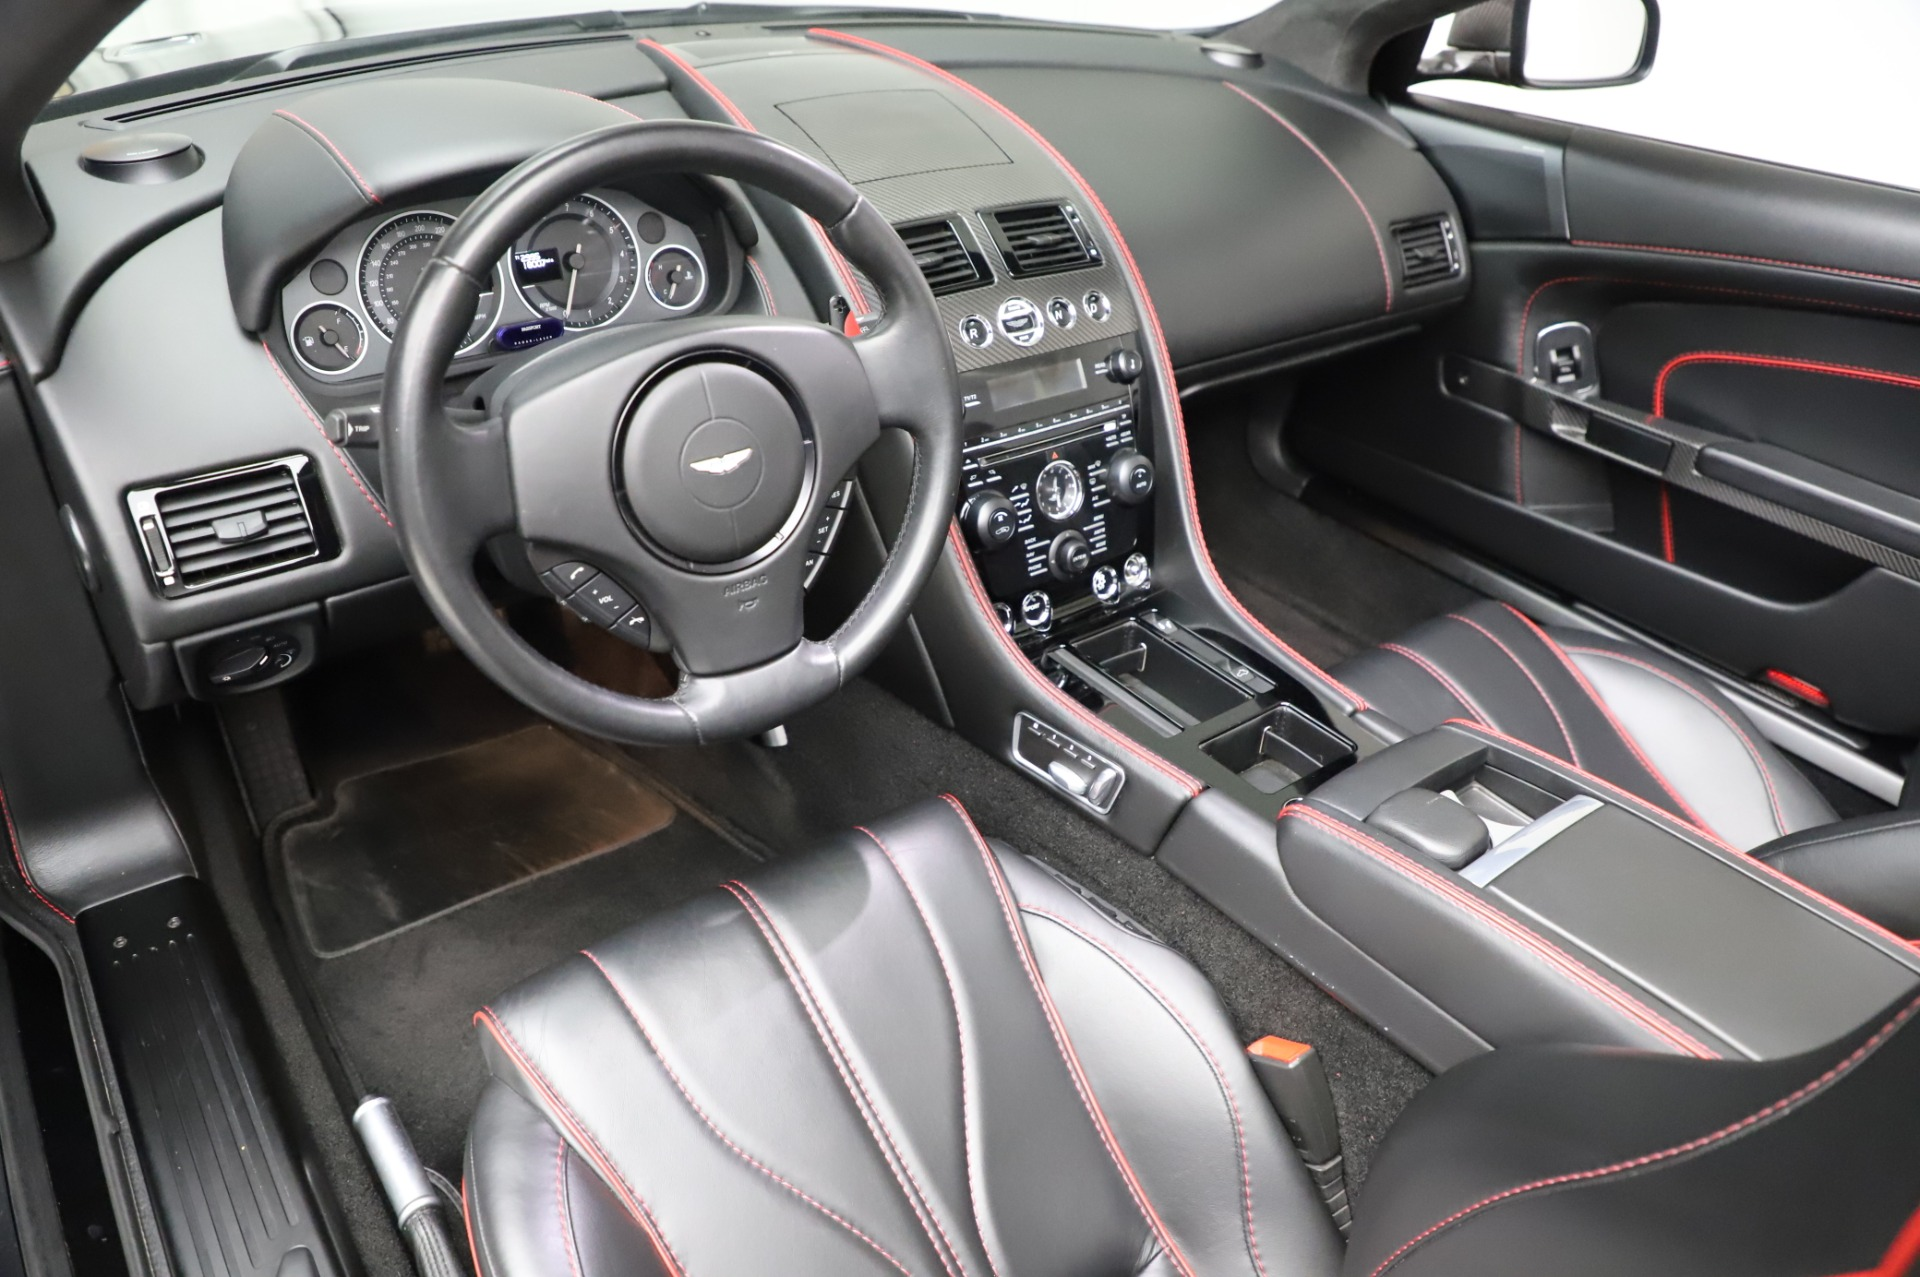 Used 2015 Aston Martin DB9 Carbon Edition Volante For Sale In Westport, CT 1919_p19